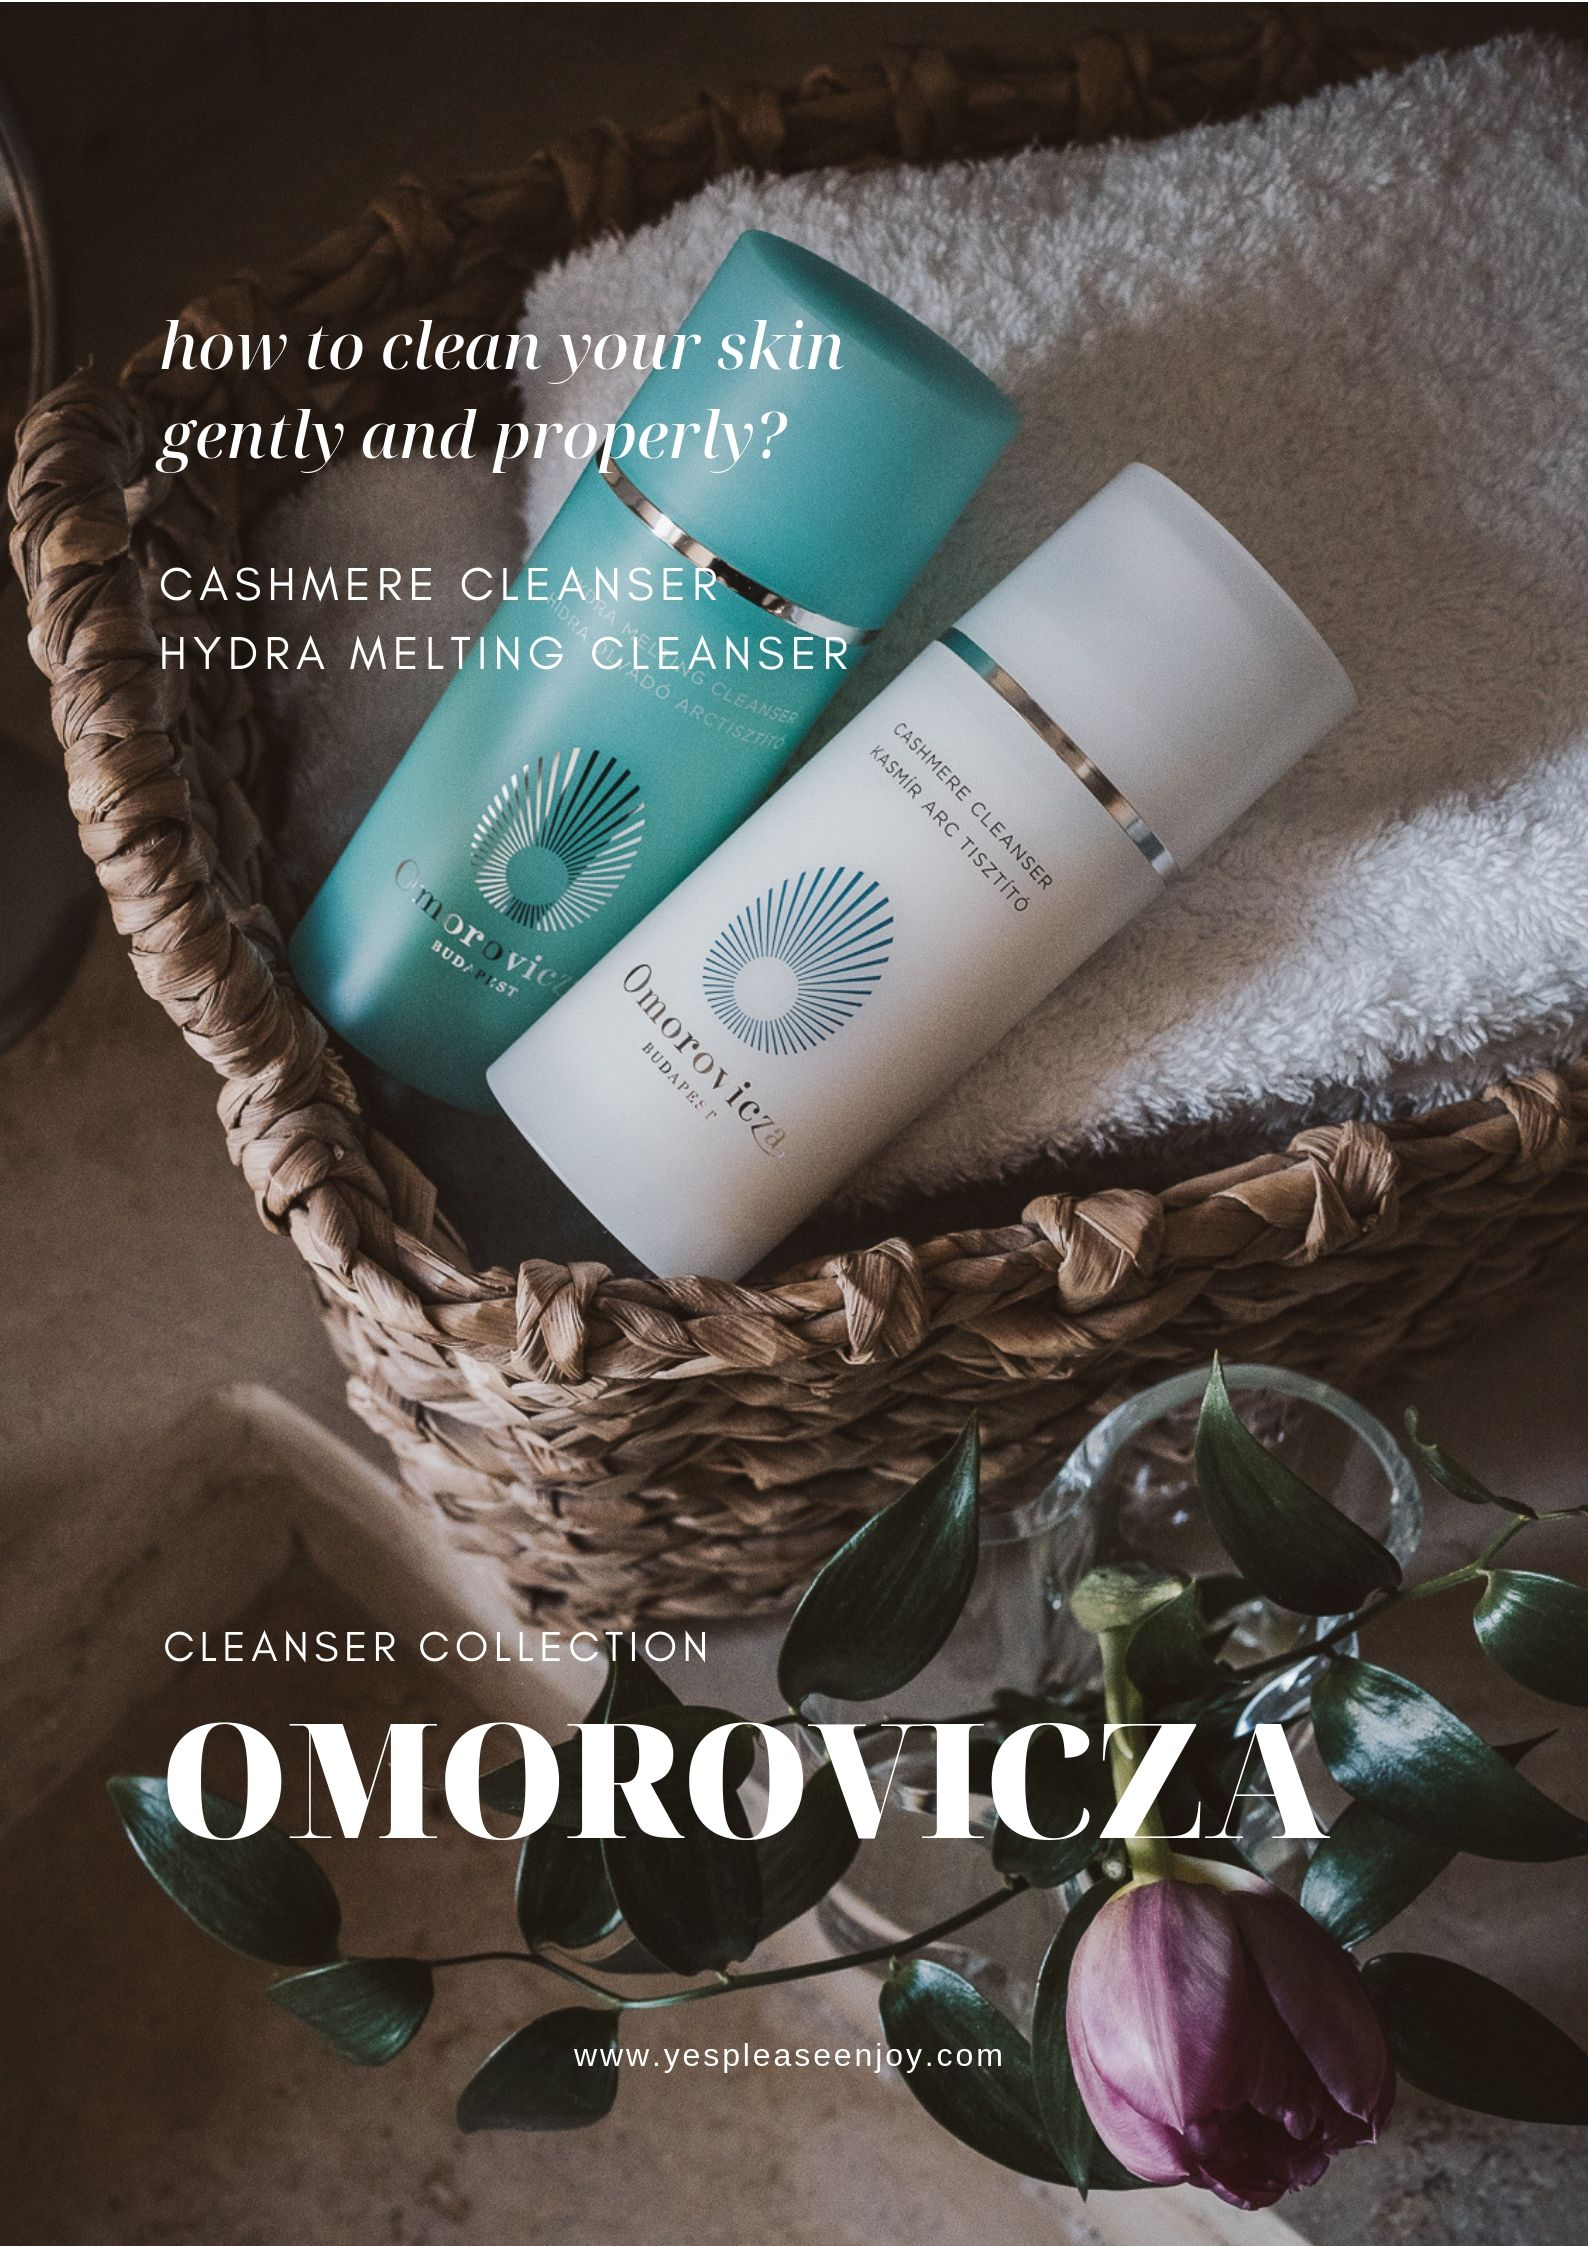 Omorovicza Cleanser Collection.jpg